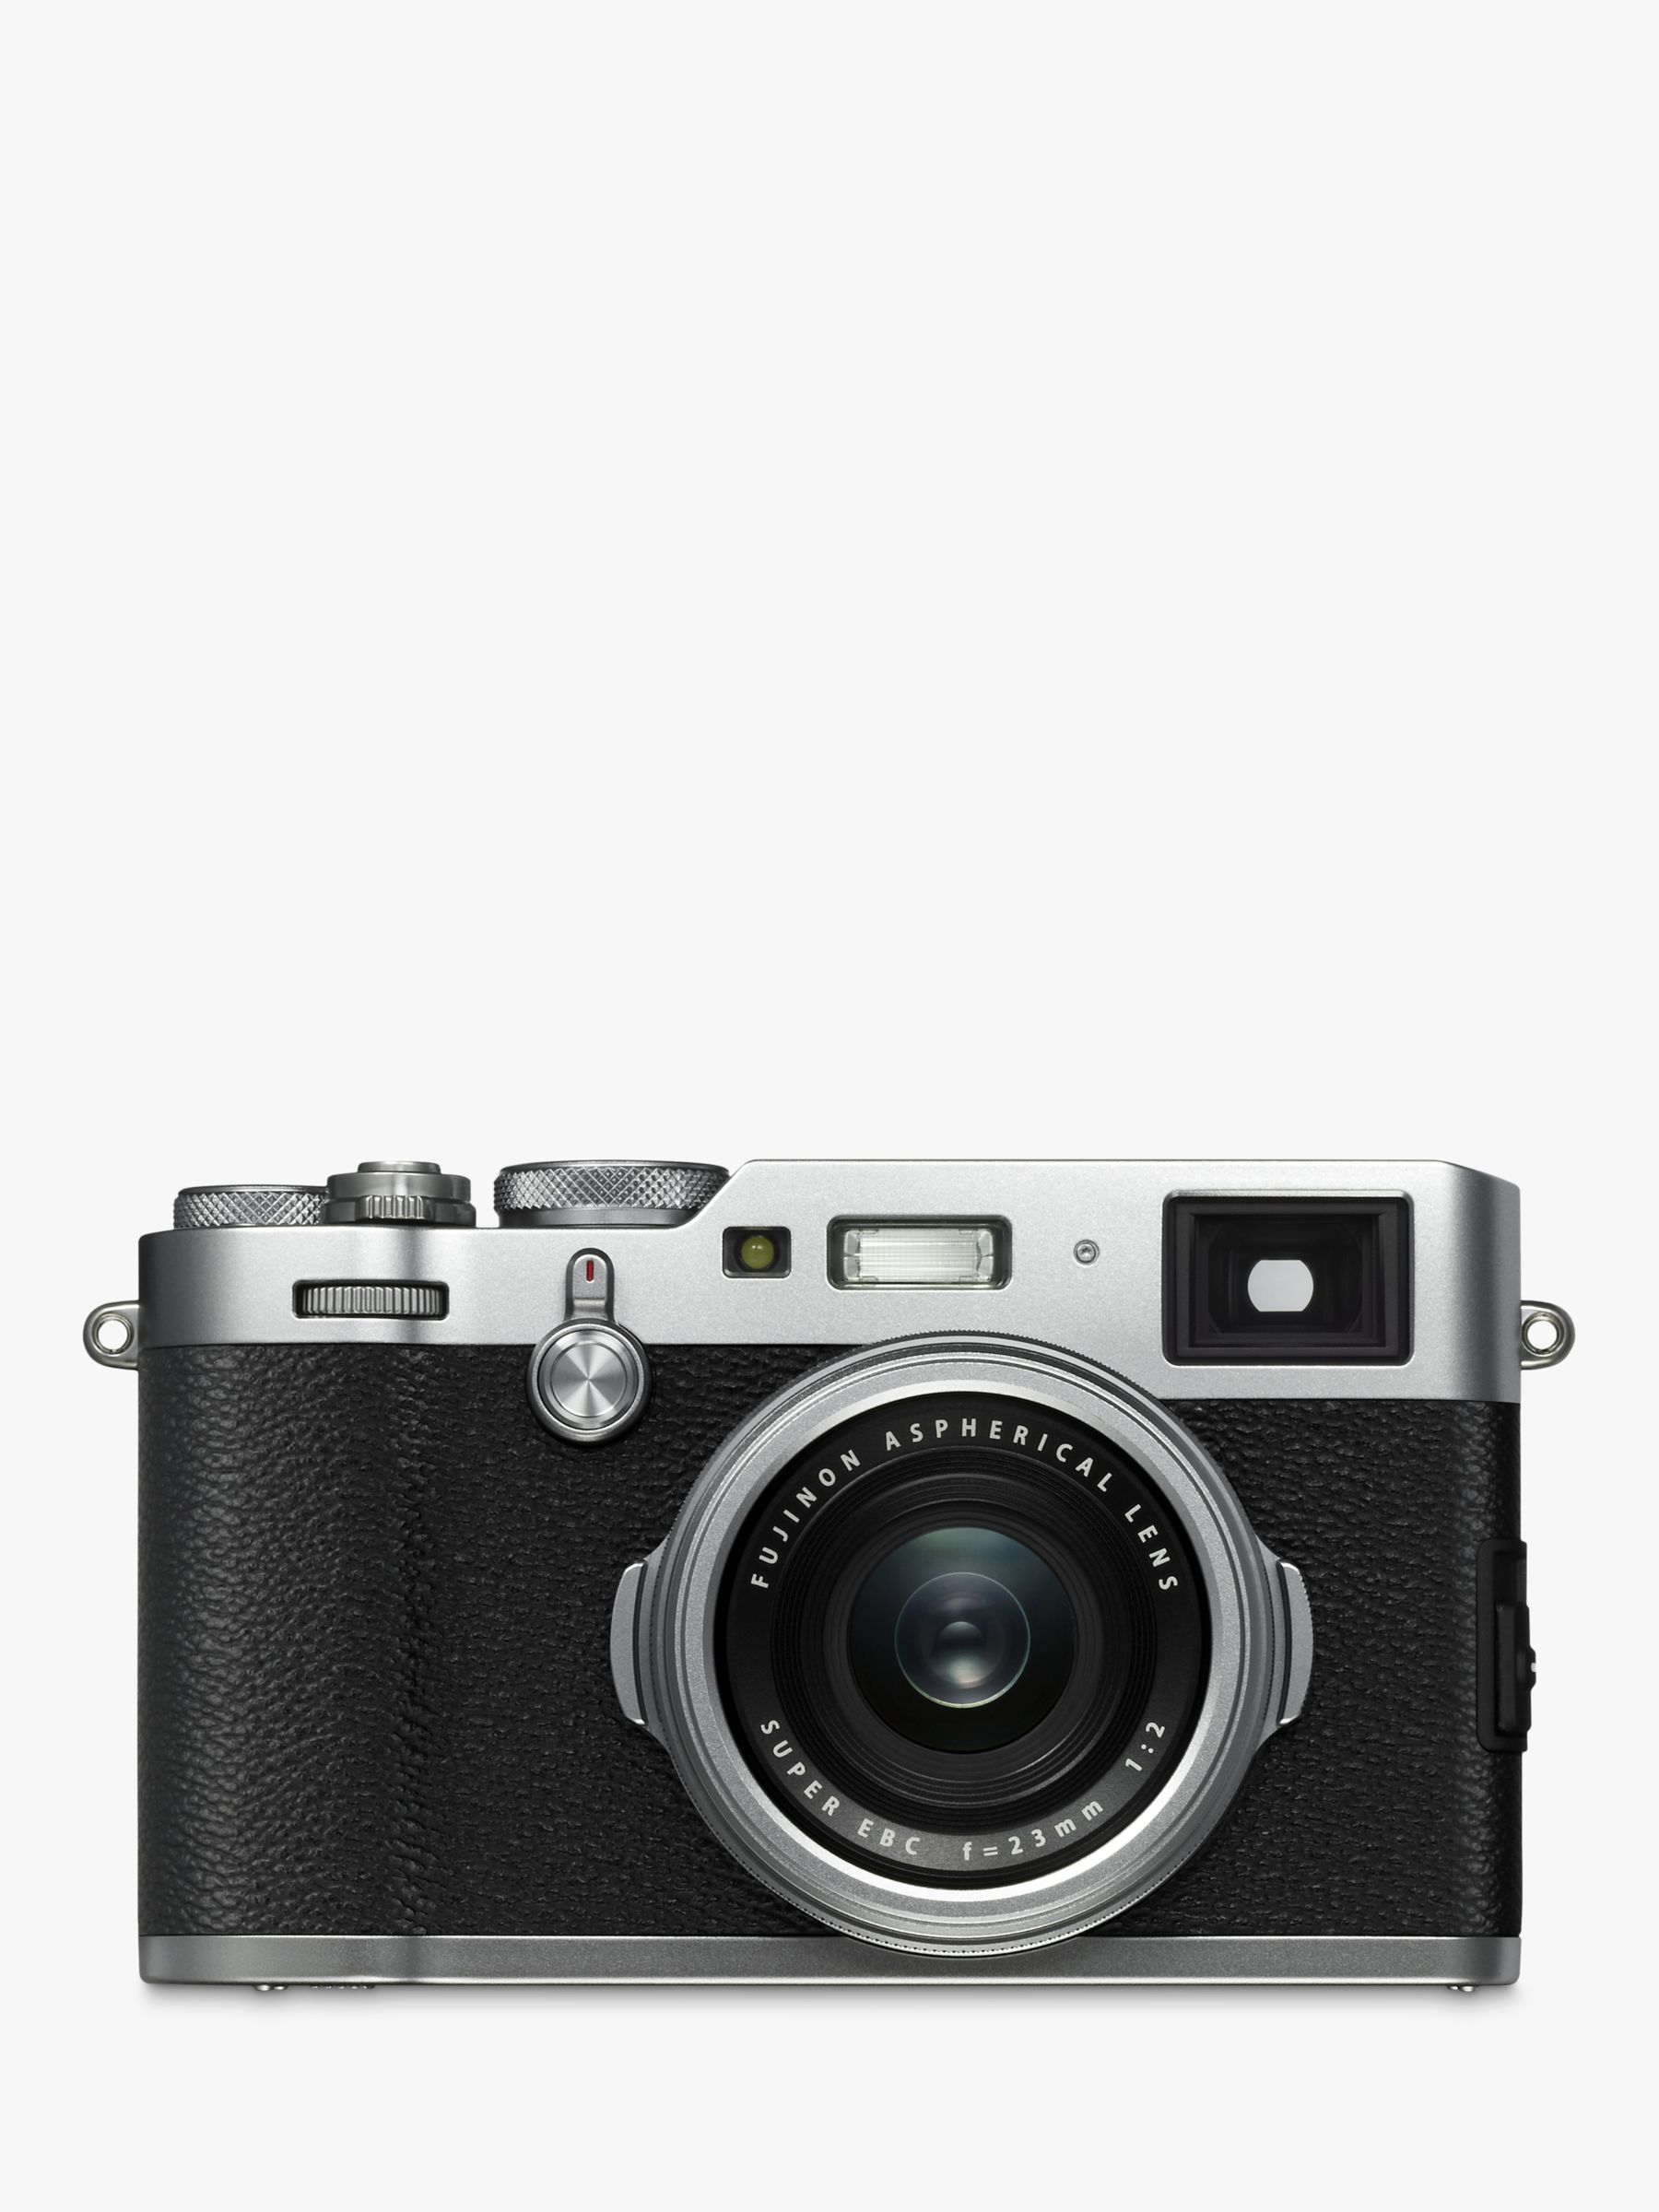 Fujifilm Fujifilm X100F Digital Compact Camera with 23mm Lens, 1080p Full HD, 24.3MP, Wi-Fi, Hybrid EVF/OVF, 3 LCD Screen